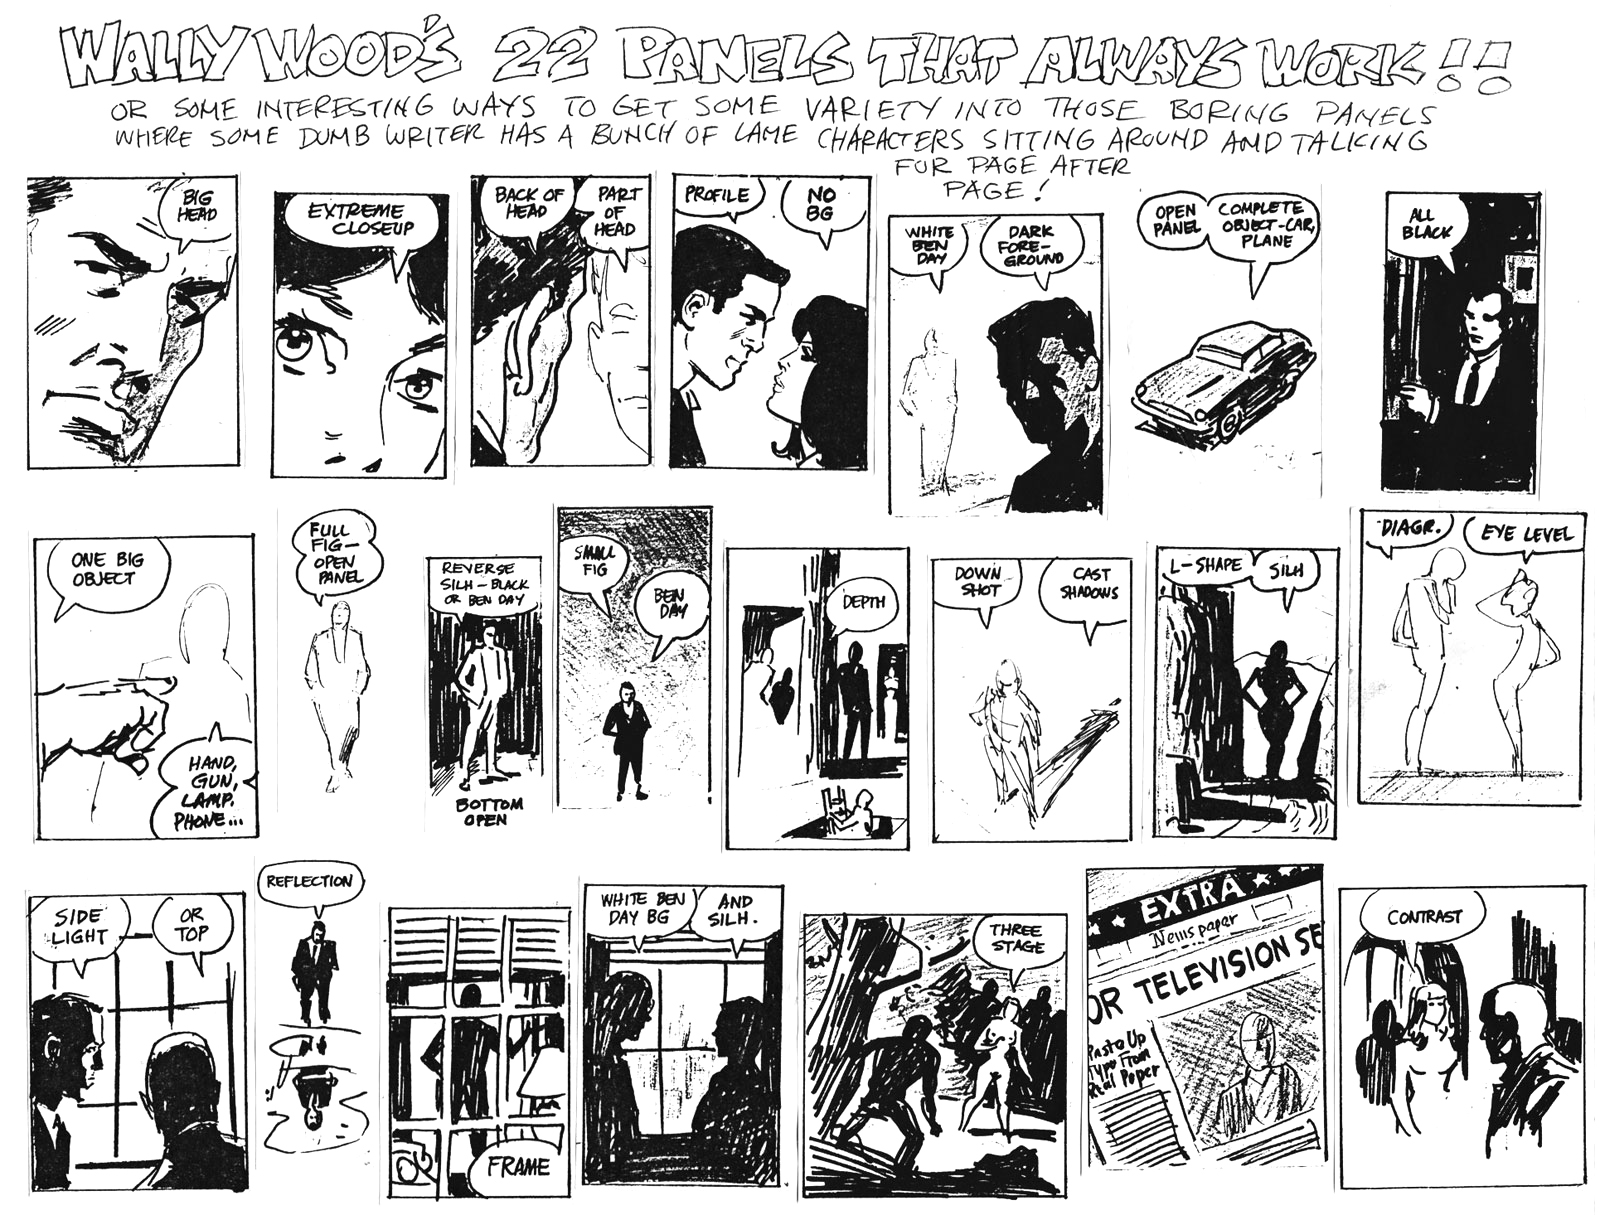 'Wally Wood's 22 Panels That Always Work'